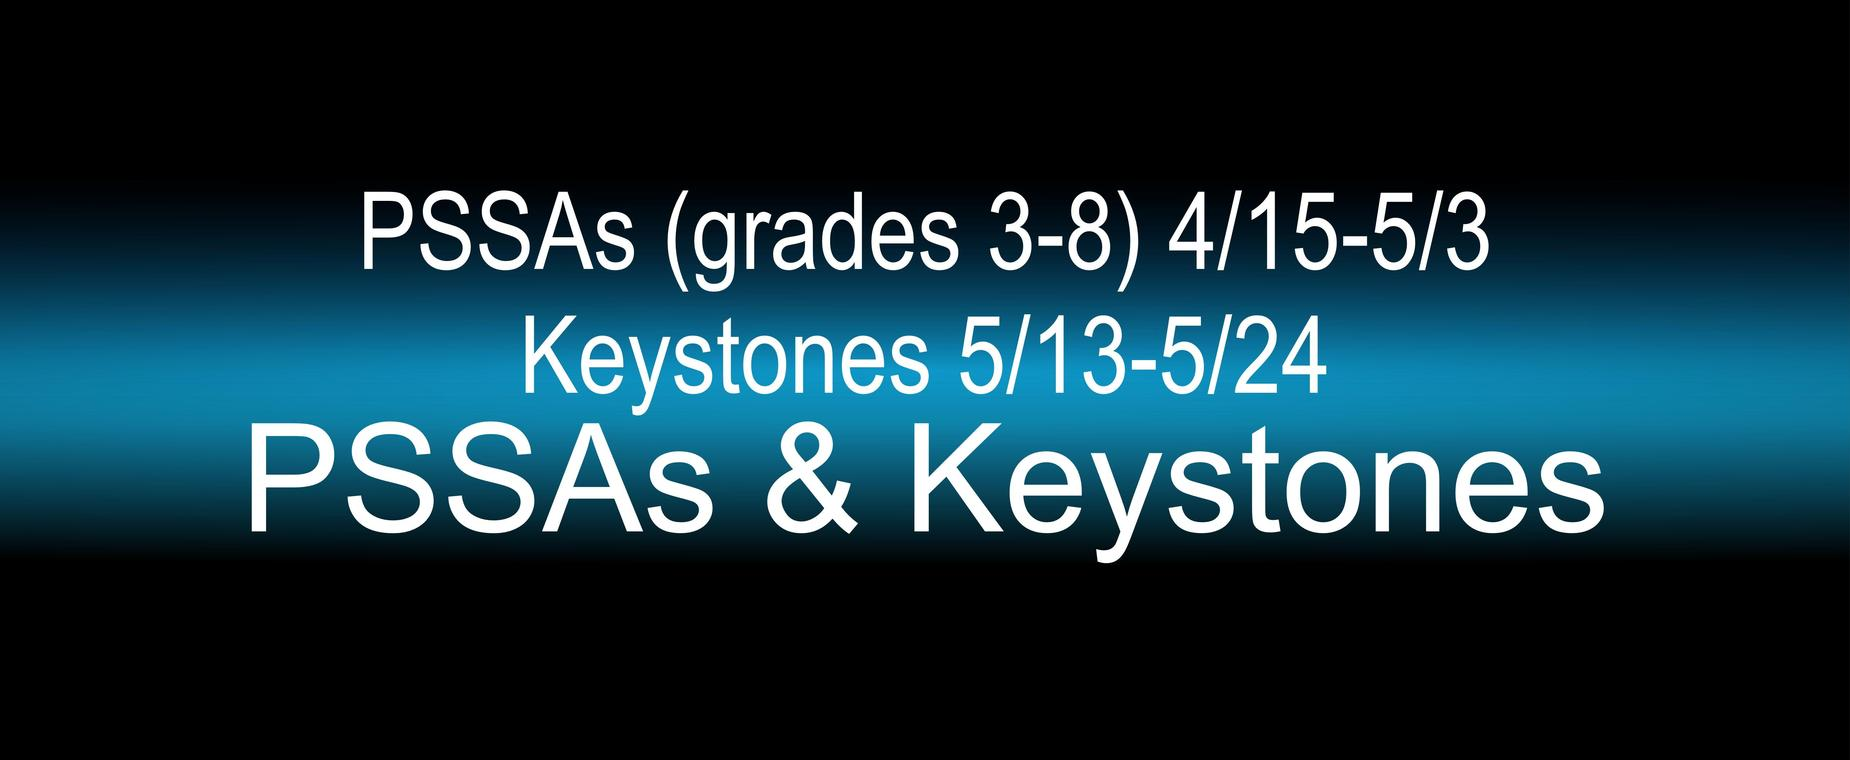 PSSA and Keystone testing dates